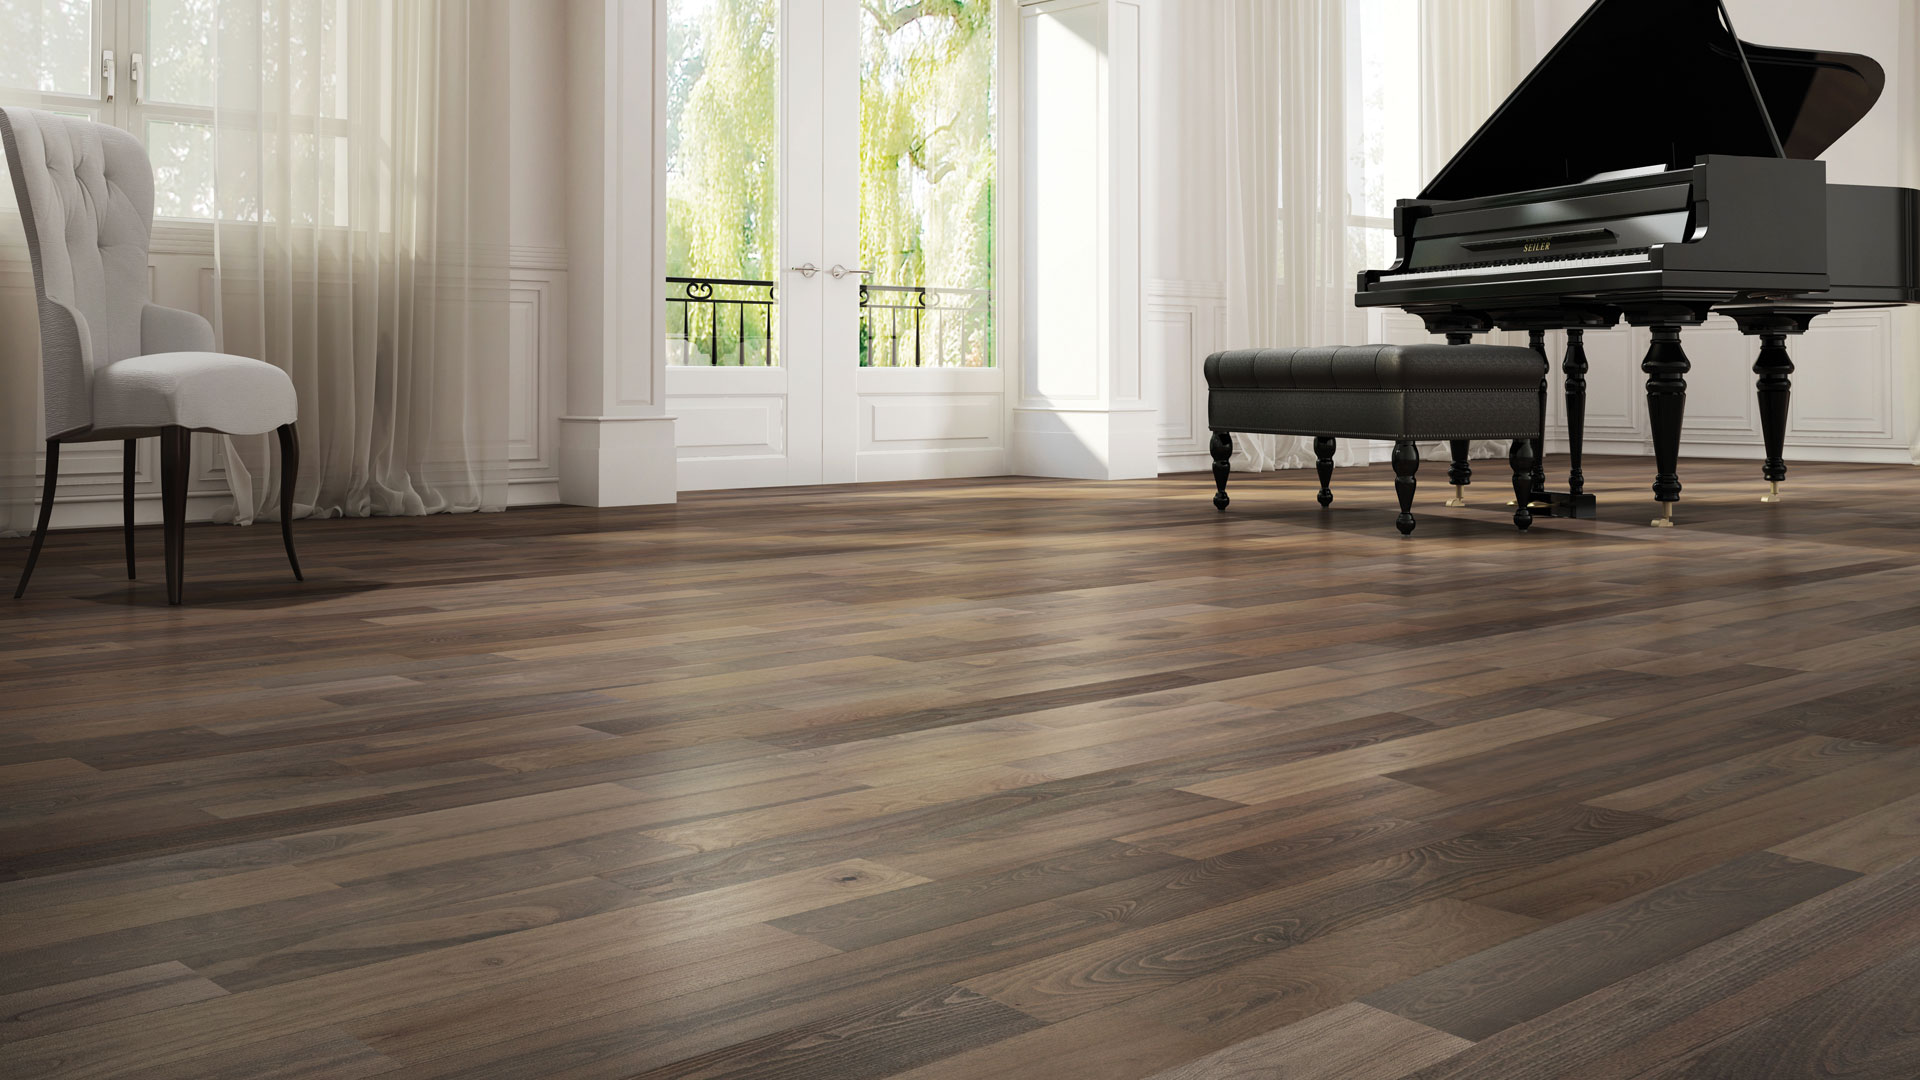 Latest 3 hardwood flooring trends lauzon flooring for Latest floor tile trends